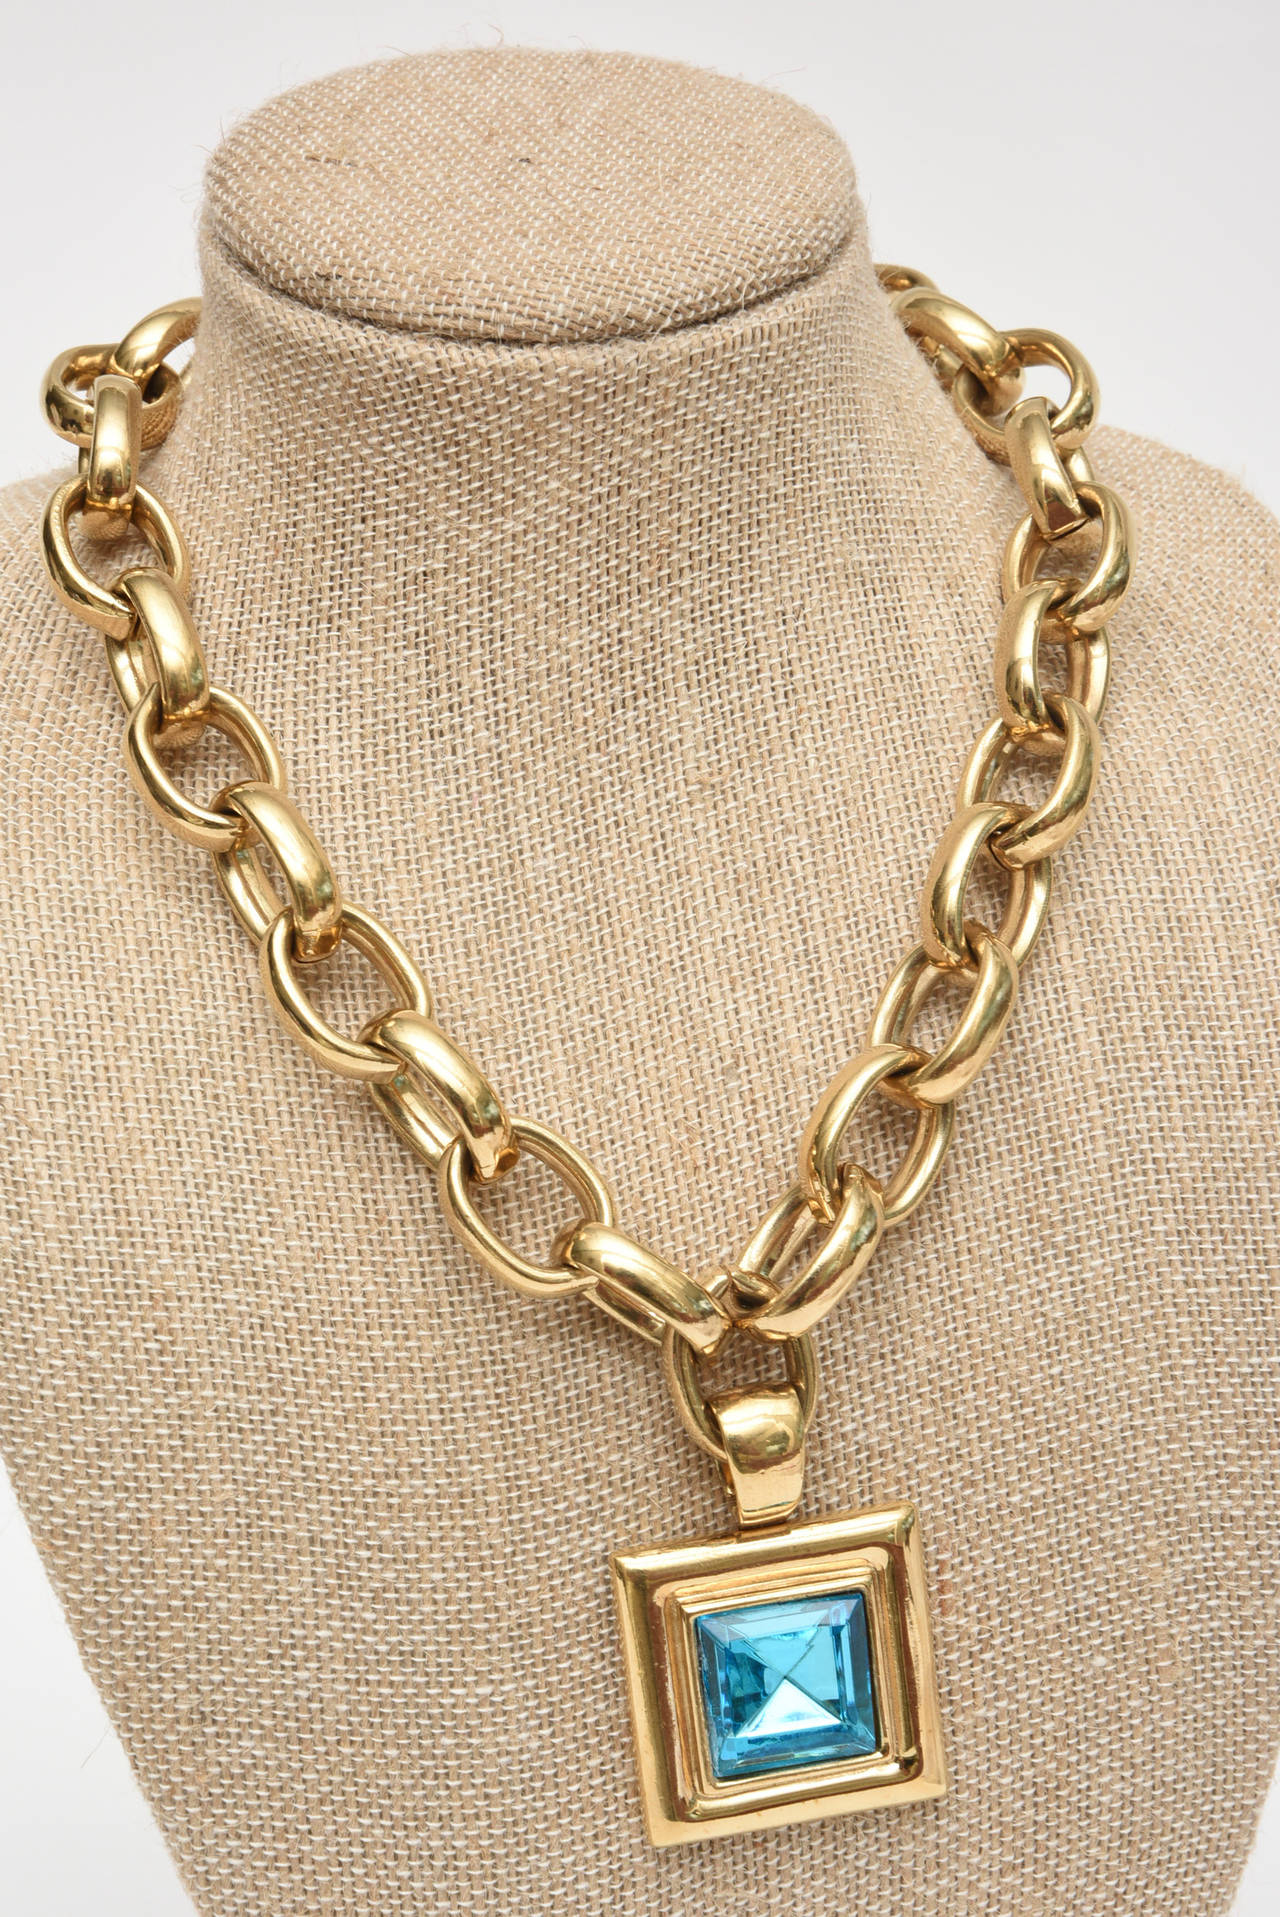 Givenchy Turquoise Chain and Glass Medallion Link Necklace Vintage For Sale 1